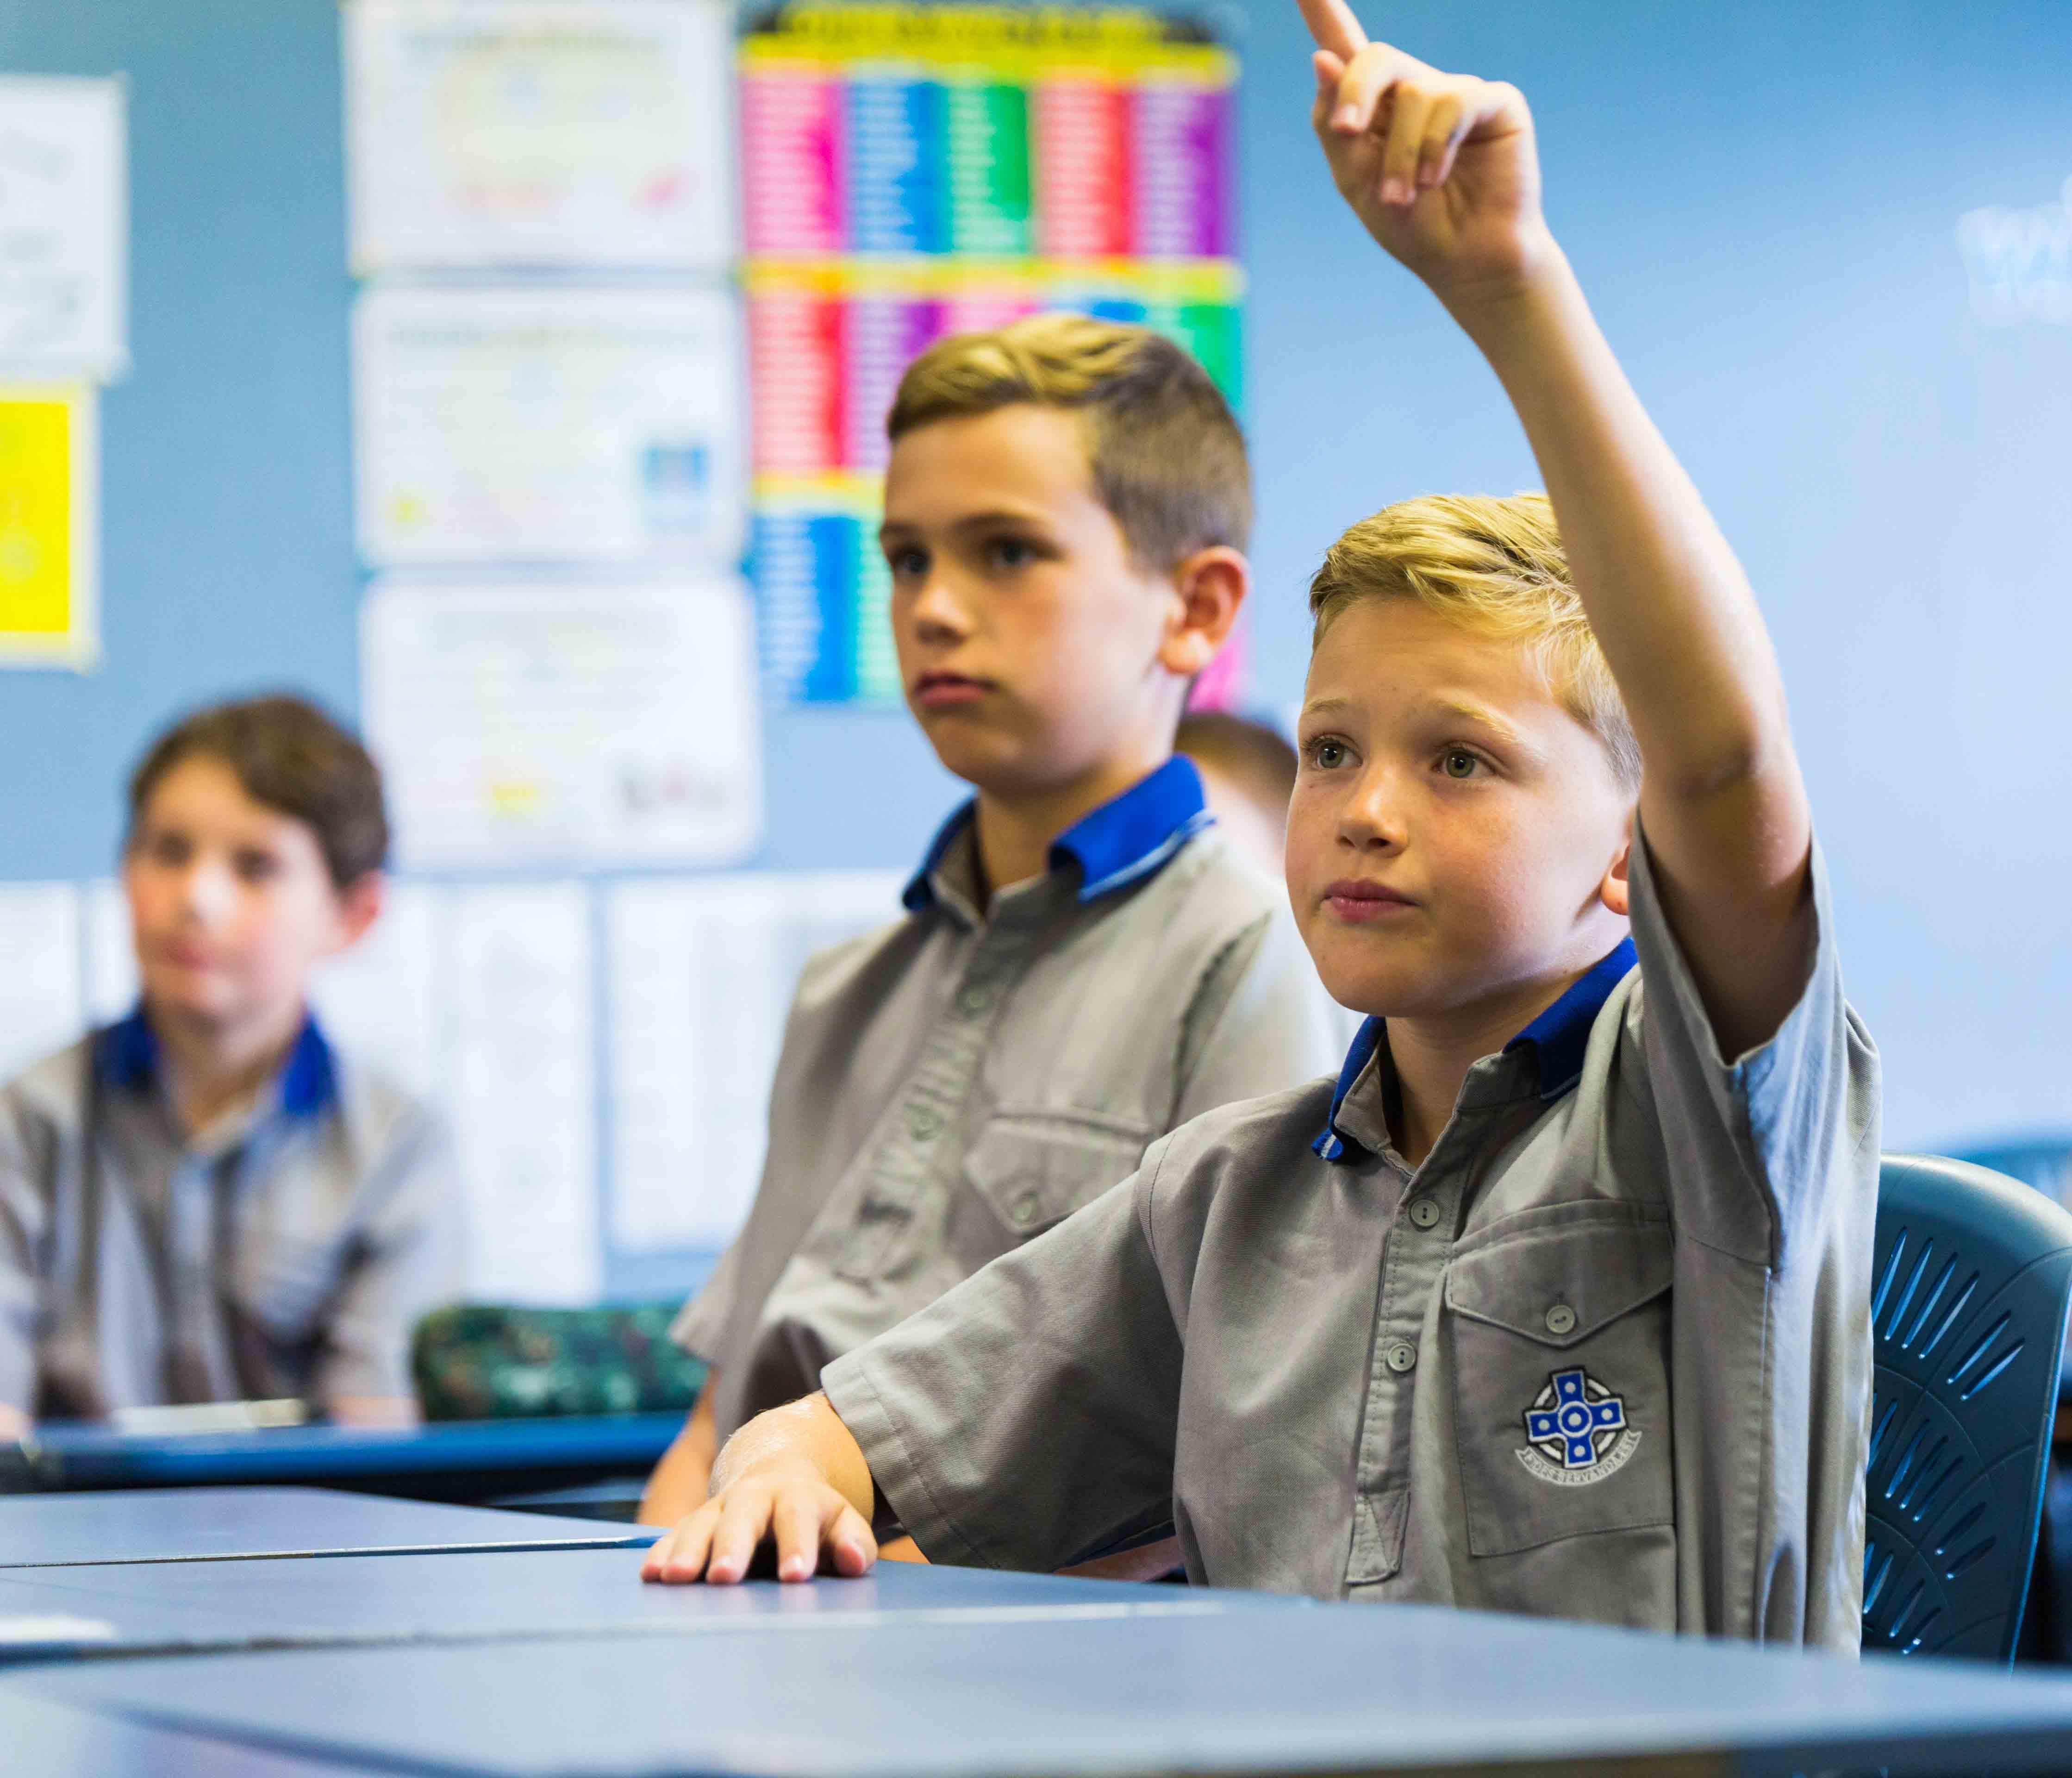 Saint-Kentigern-Boys'-School-Enhanced-Learning-for-boys.jpg